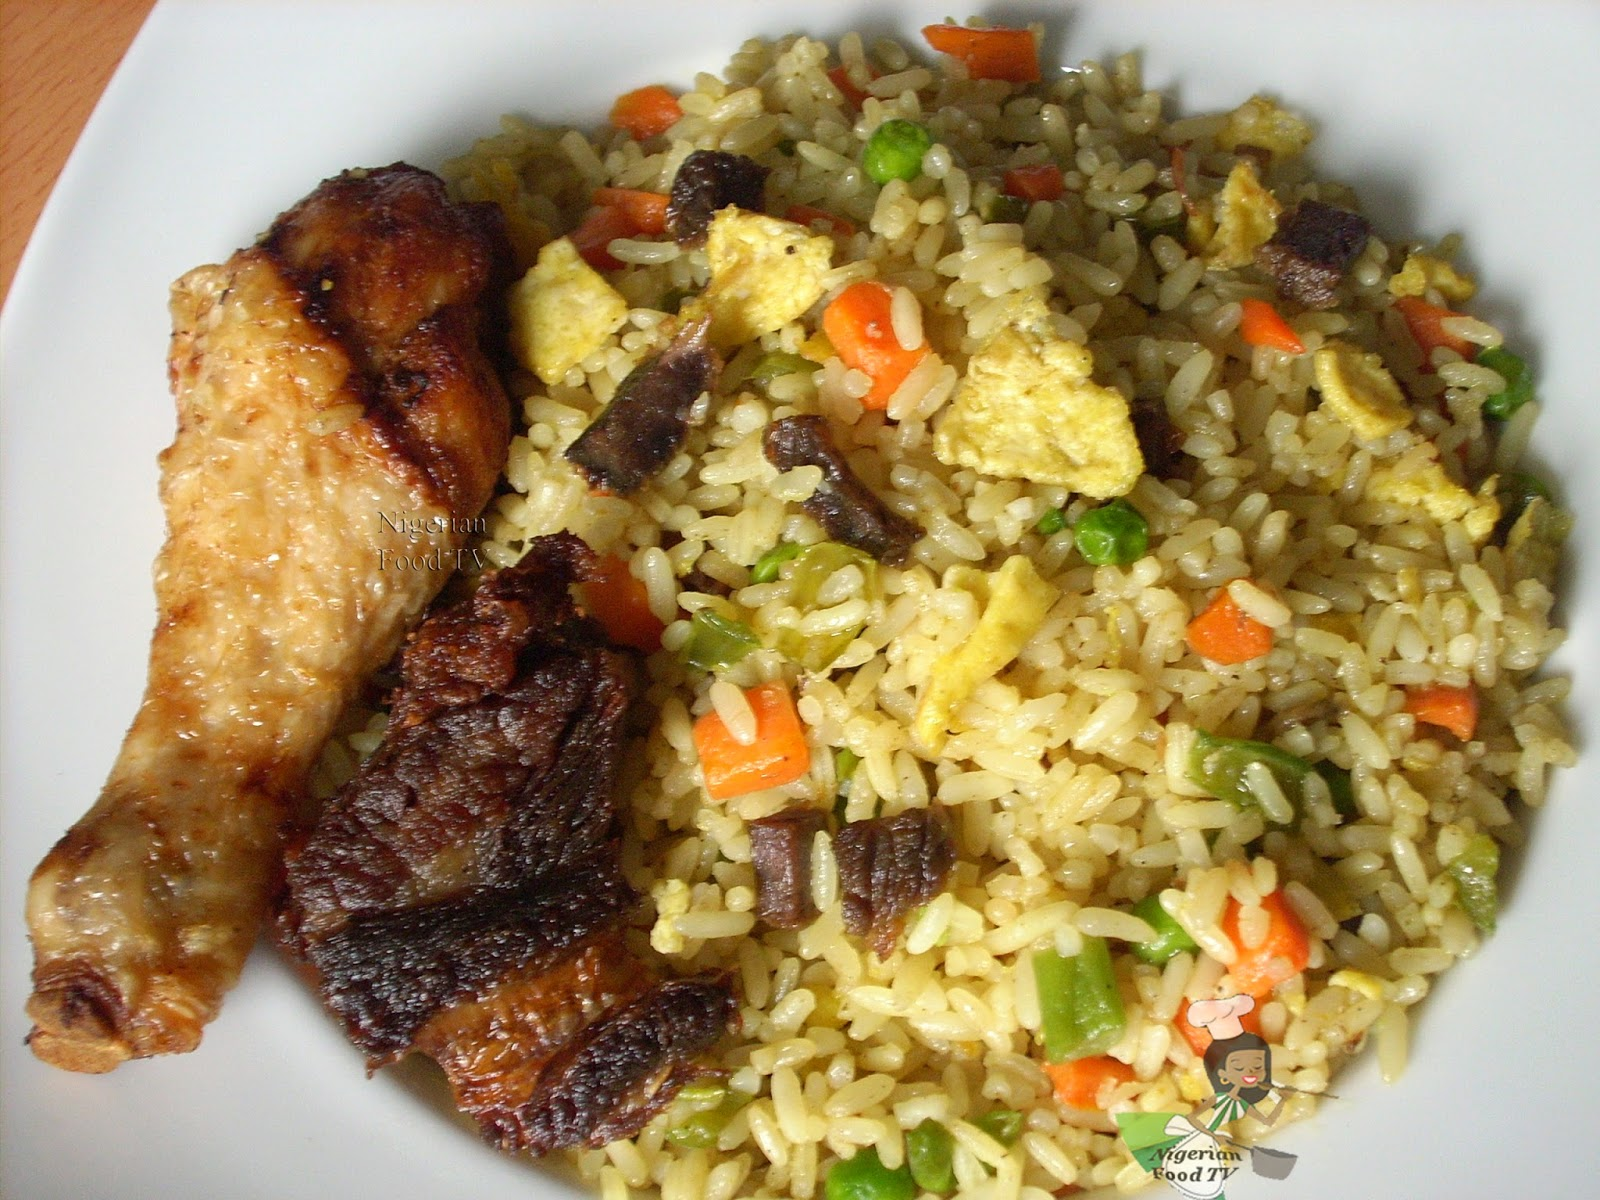 Nigerian food ,nigerian food recipe,Nigerian food recipes,Nigerian Food TV